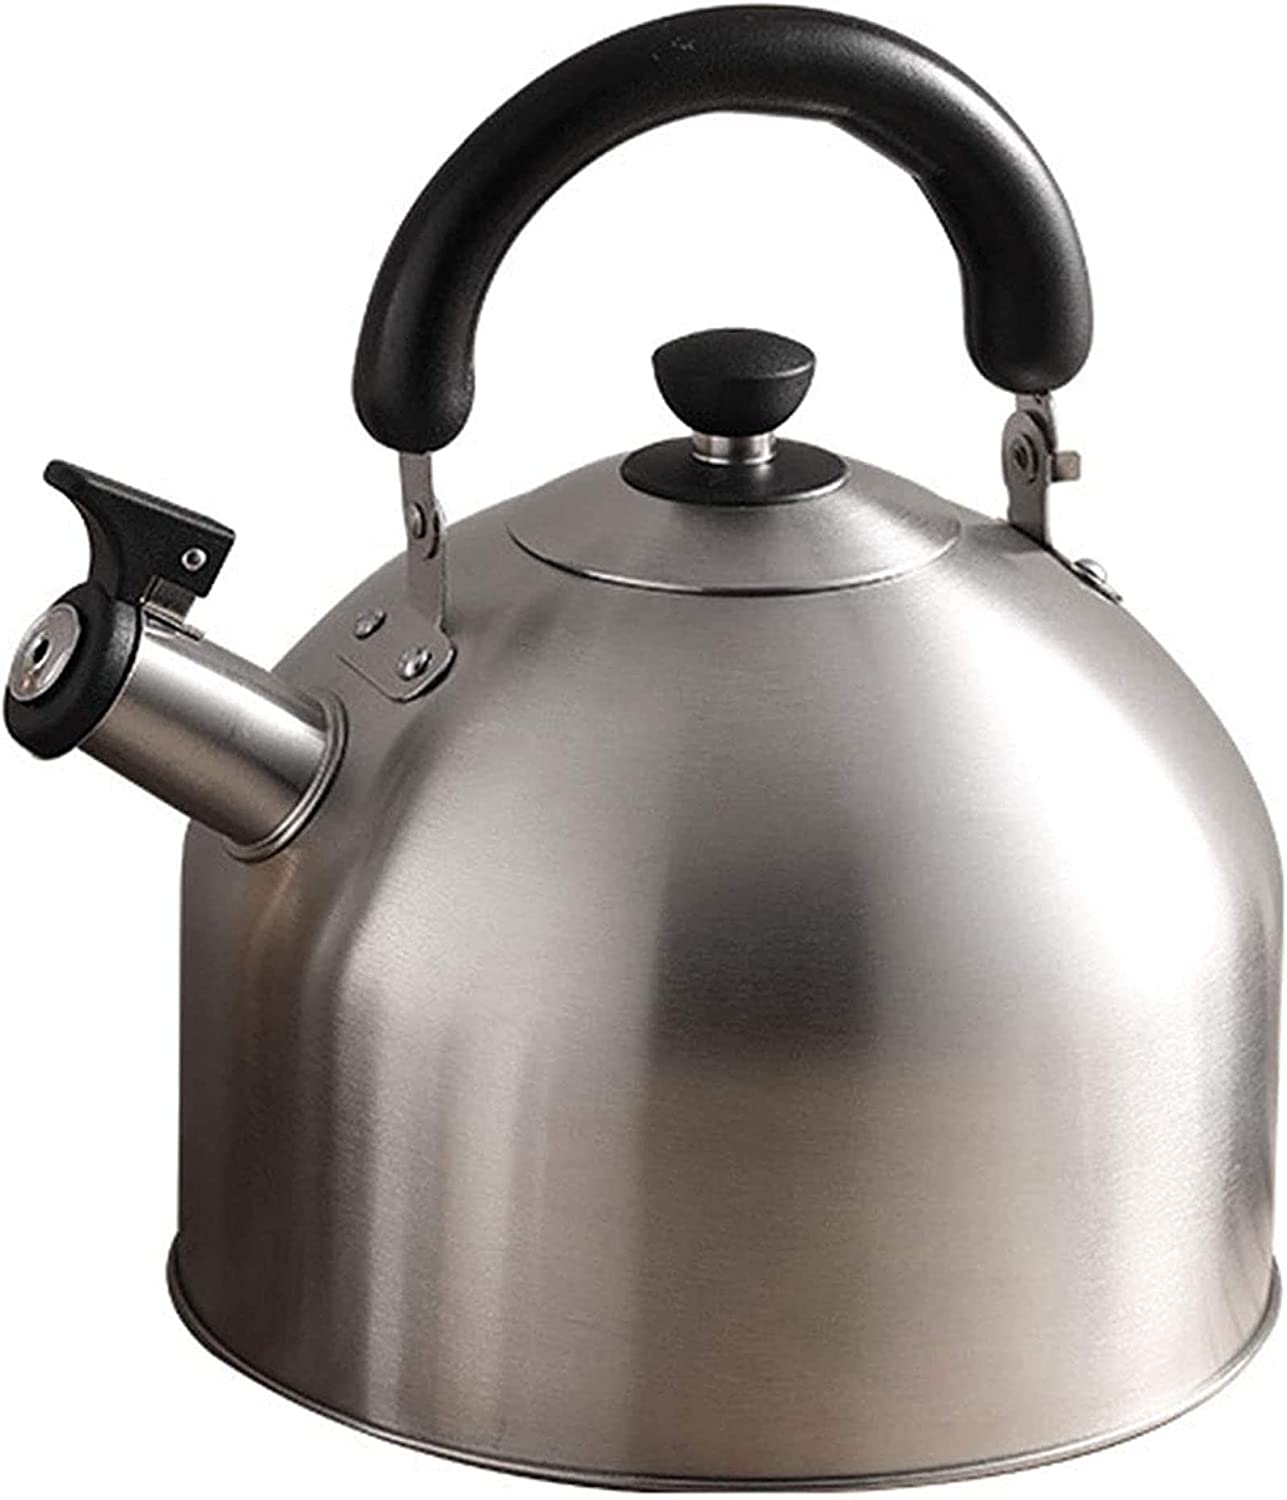 Large Capacity Whistling Cash special price Teapot Ranking integrated 1st place on Stove of Handle Foldable Top